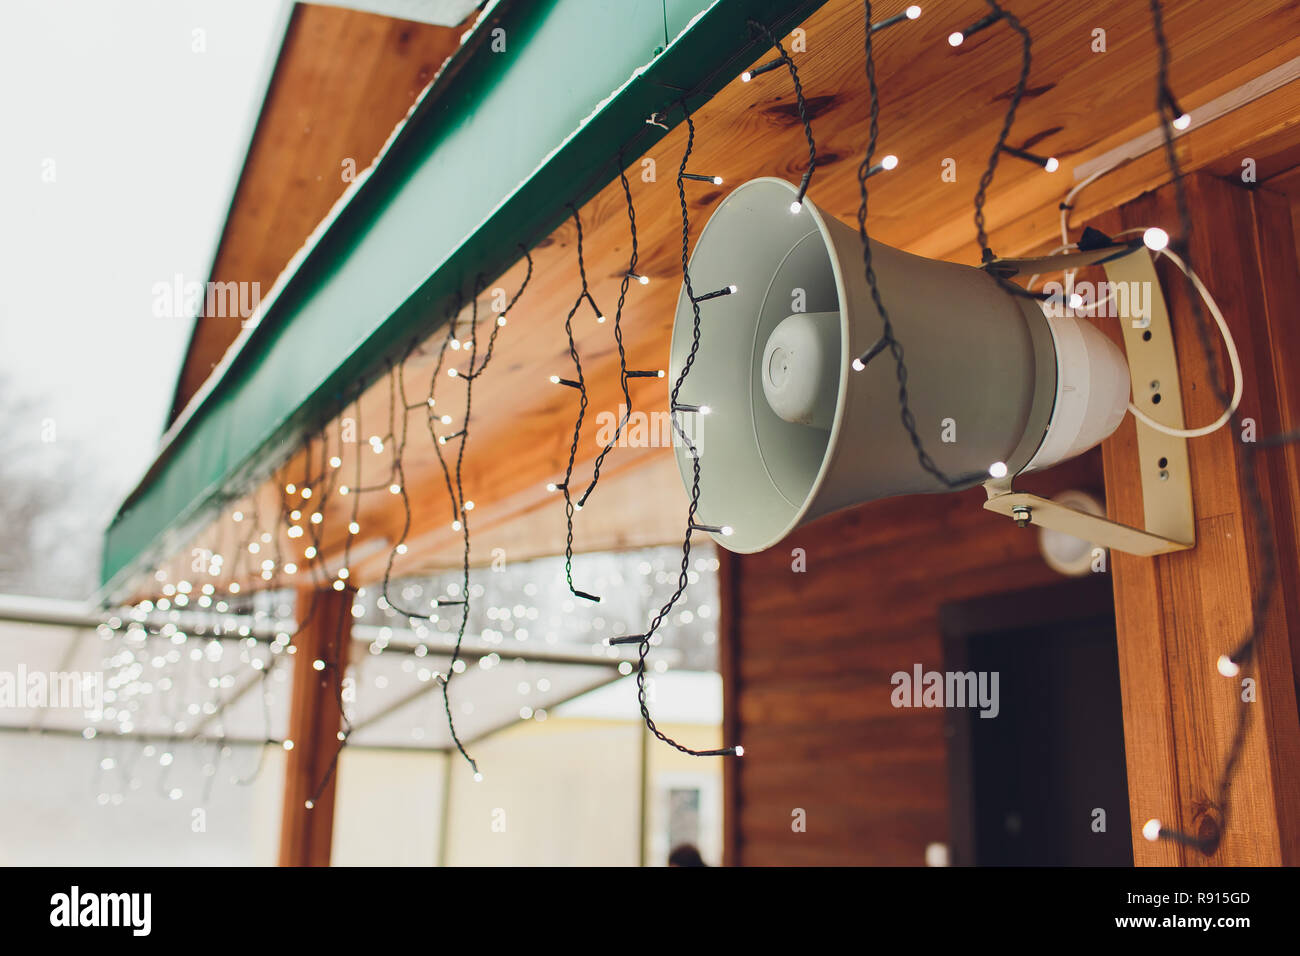 Siren and alarm speaker on the wall in the city. - Stock Image